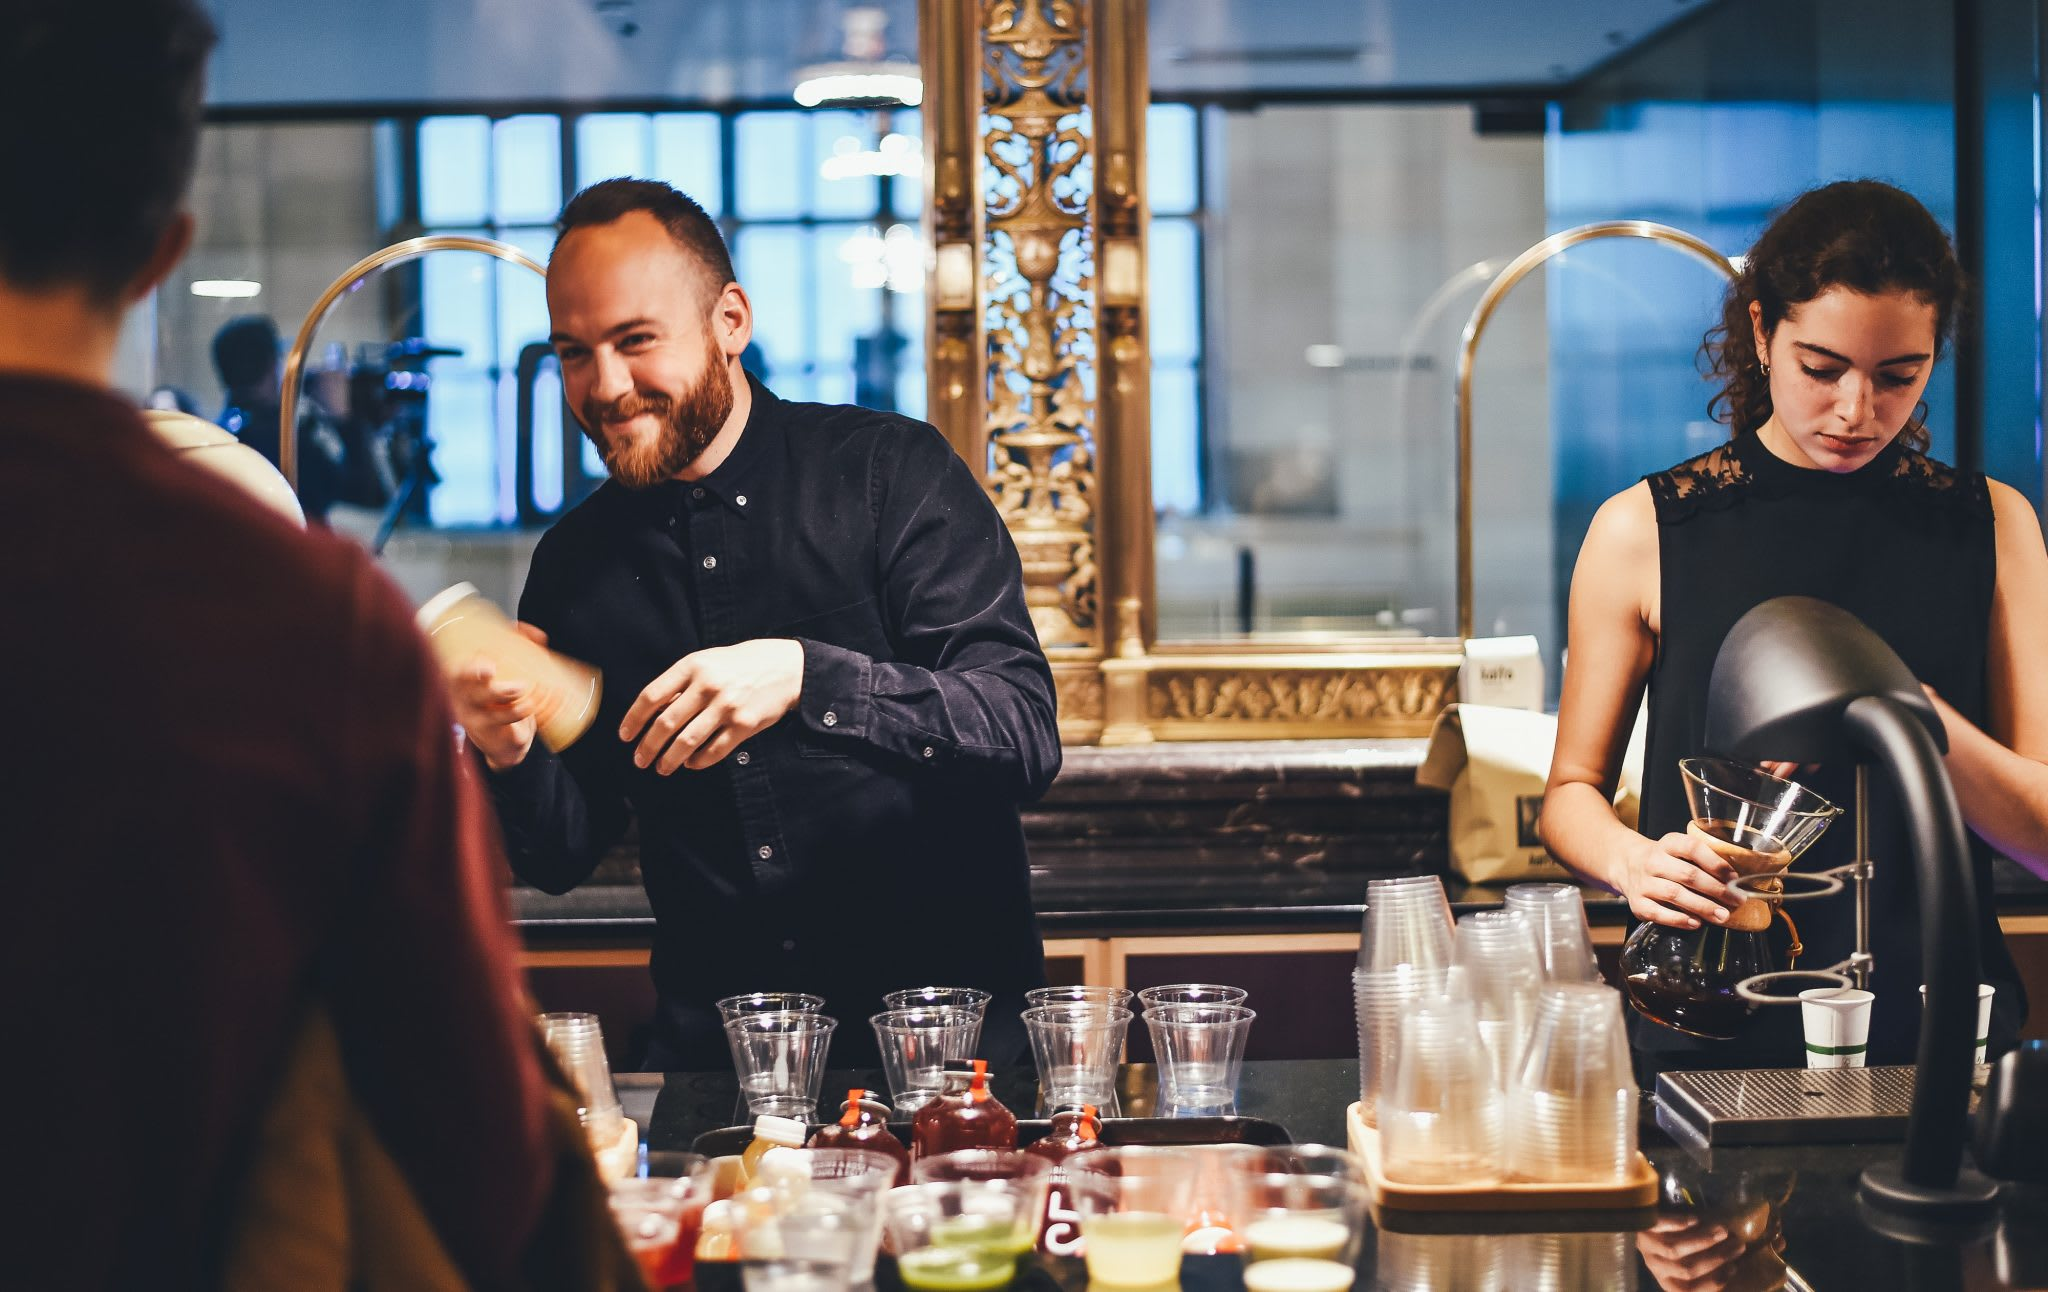 Top 5 Qualities to Look For in a Bar Manager